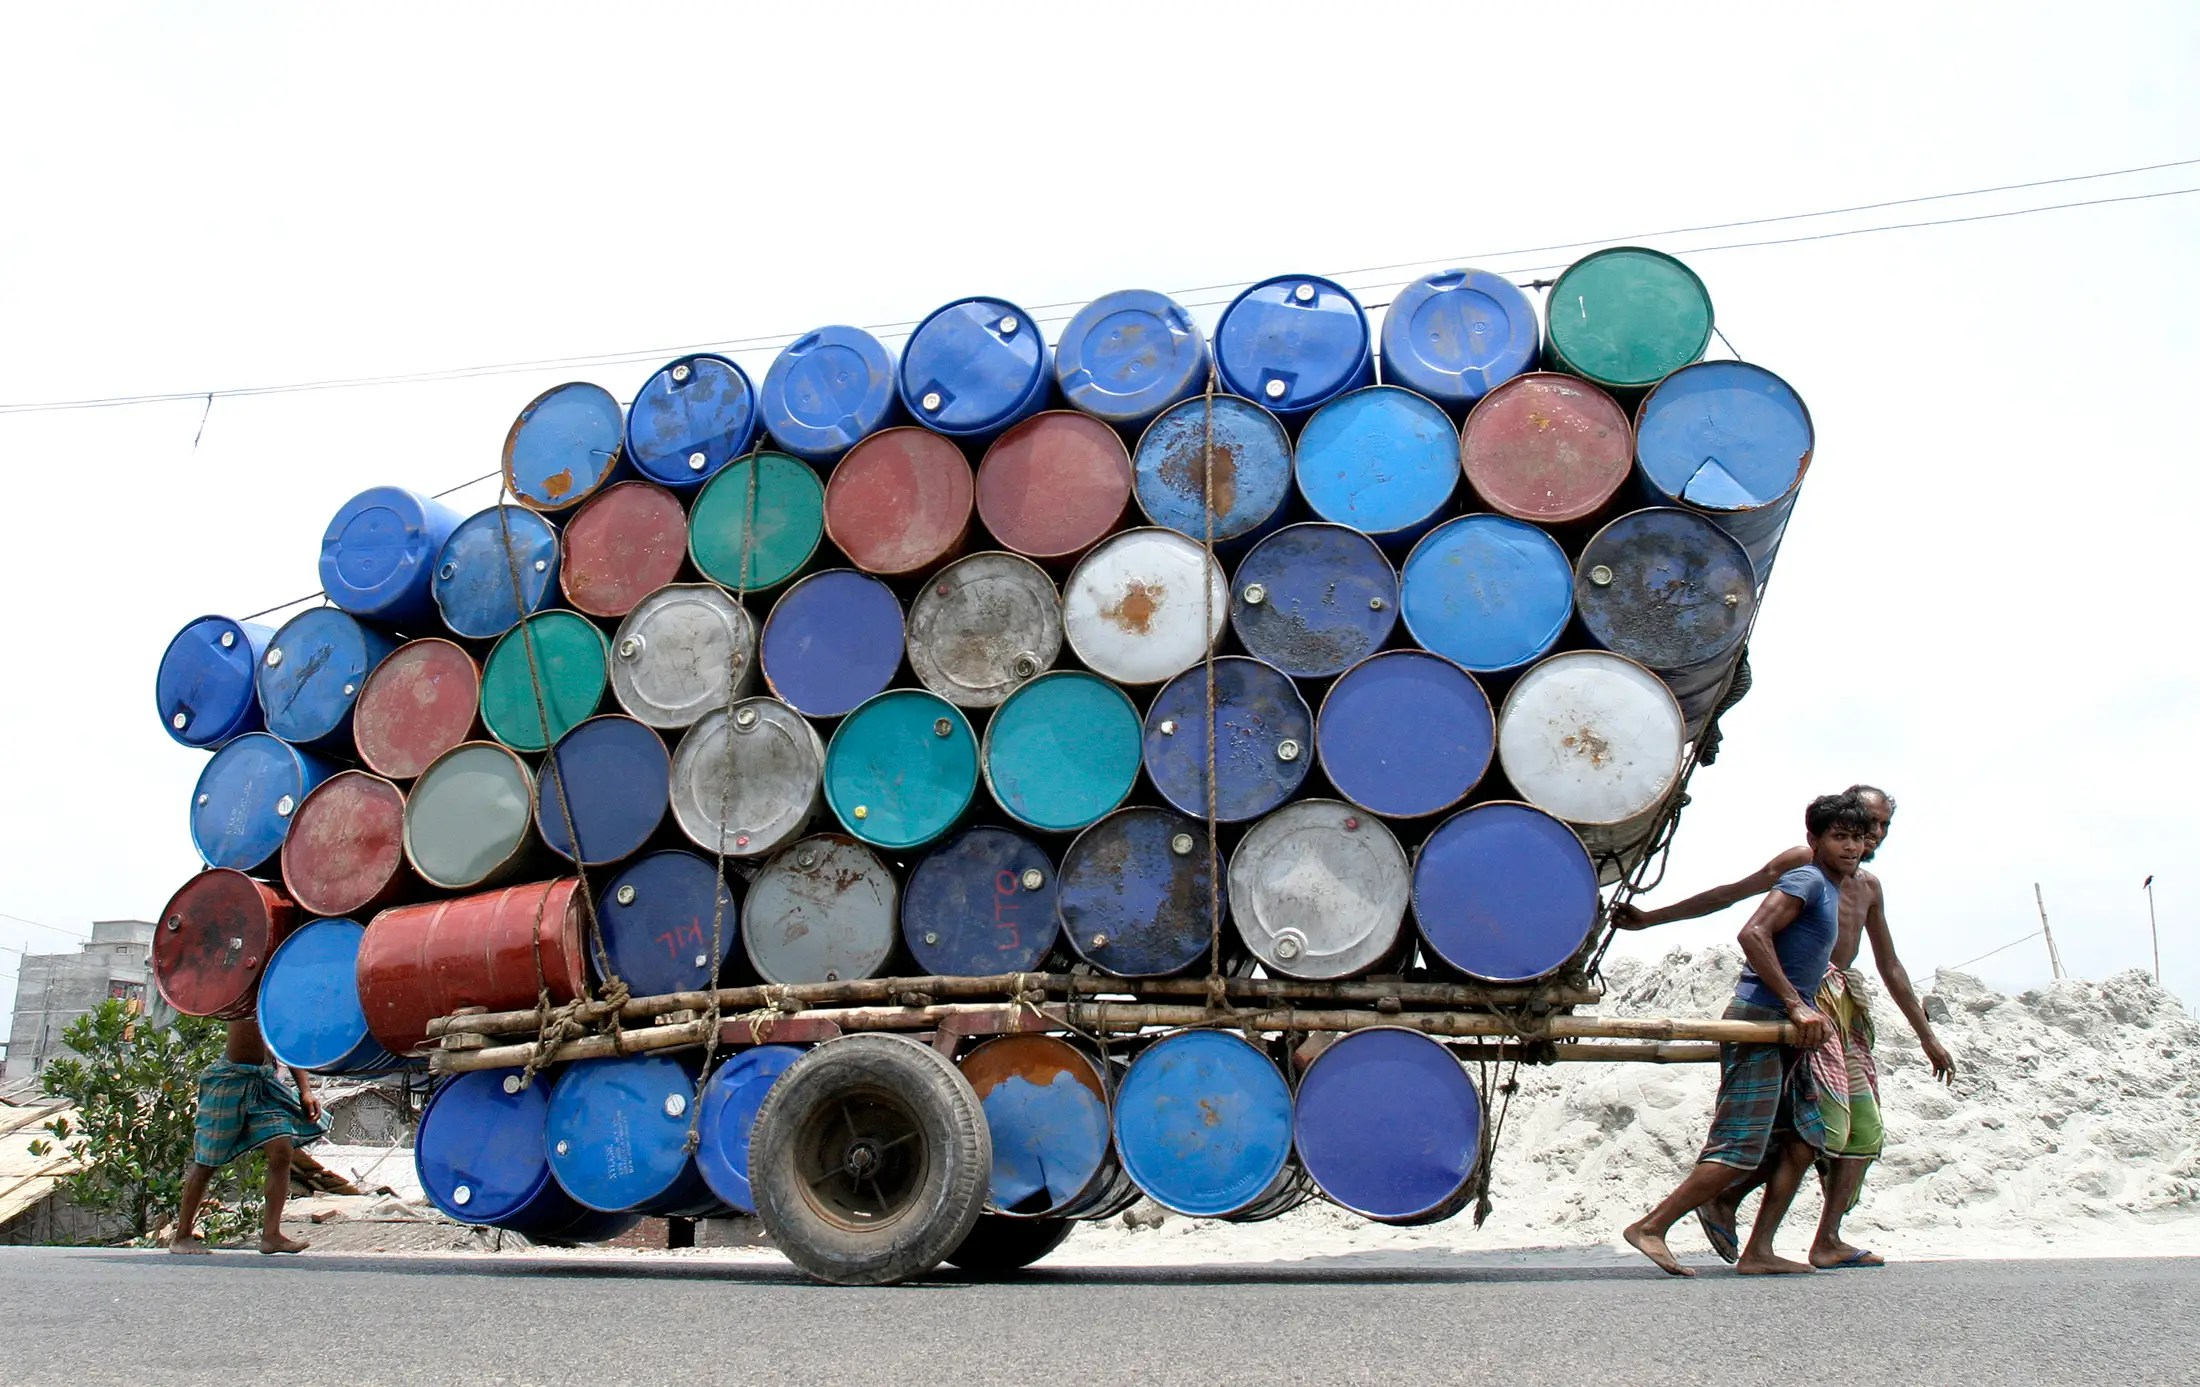 Two people pull a cart of used containers in Dhaka, Bangladesh.